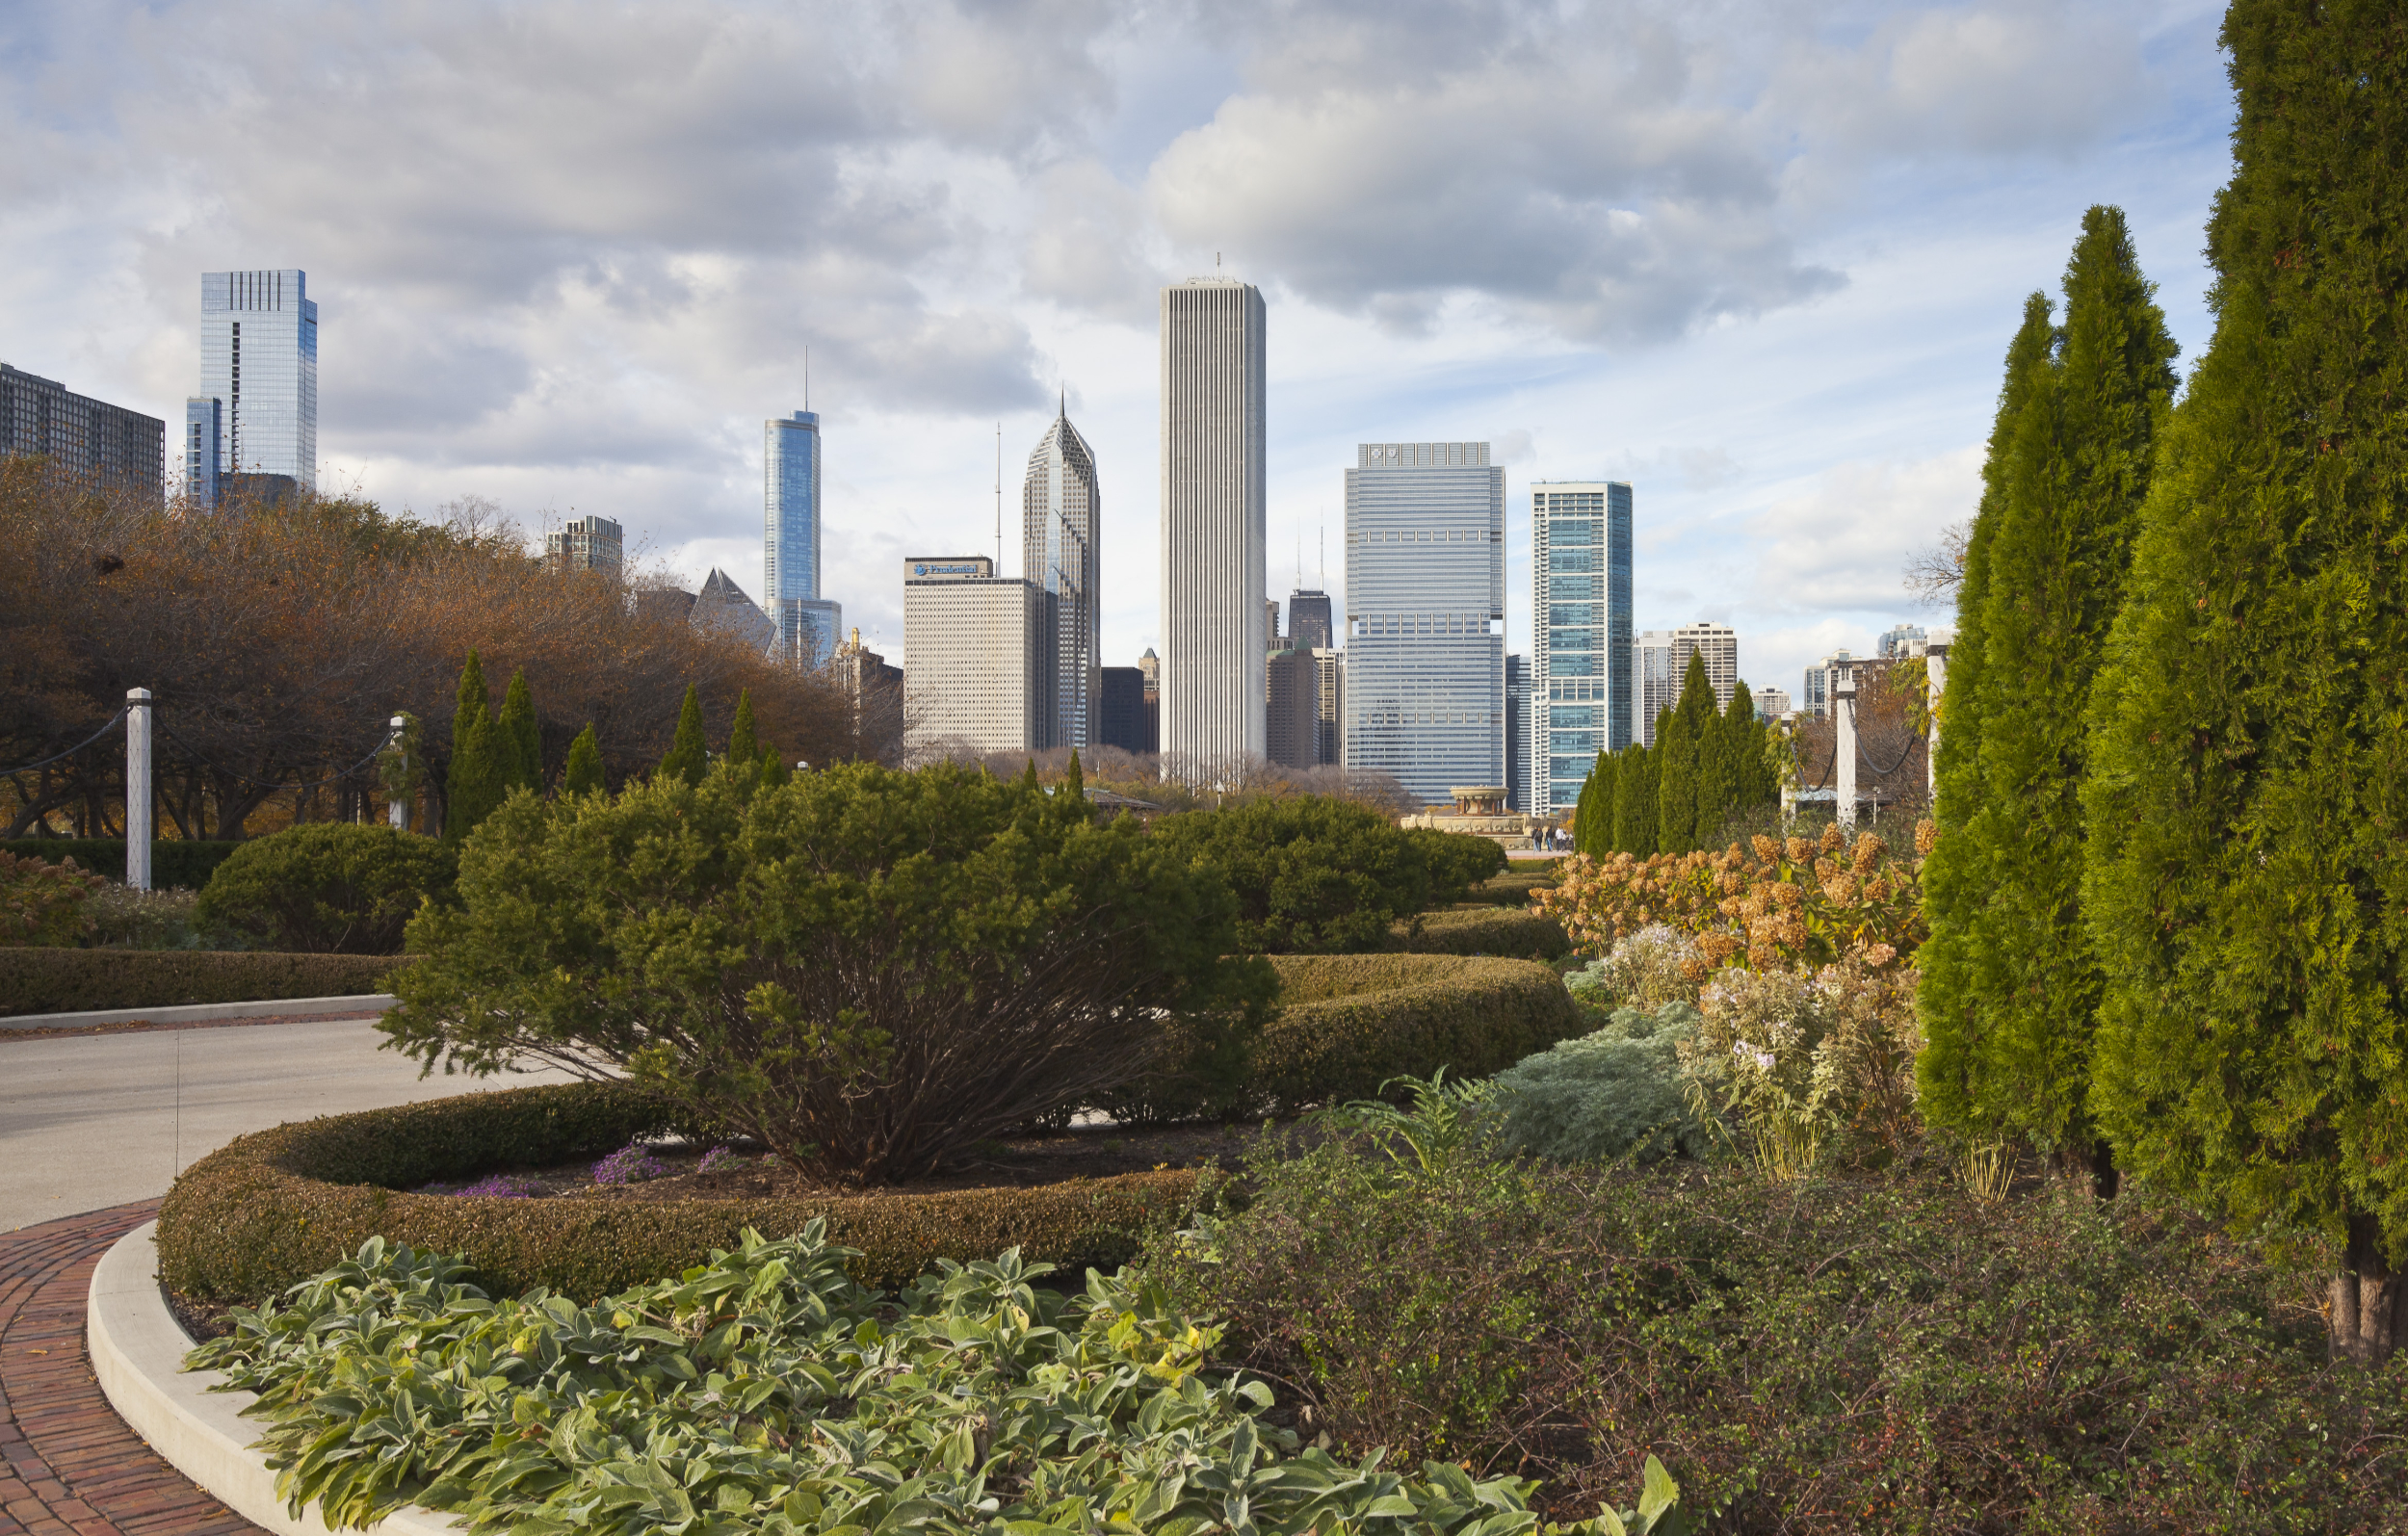 Grant Park, Chicago, Illinois (Diego Delso/Wikimedia Commons, Creative Commons)